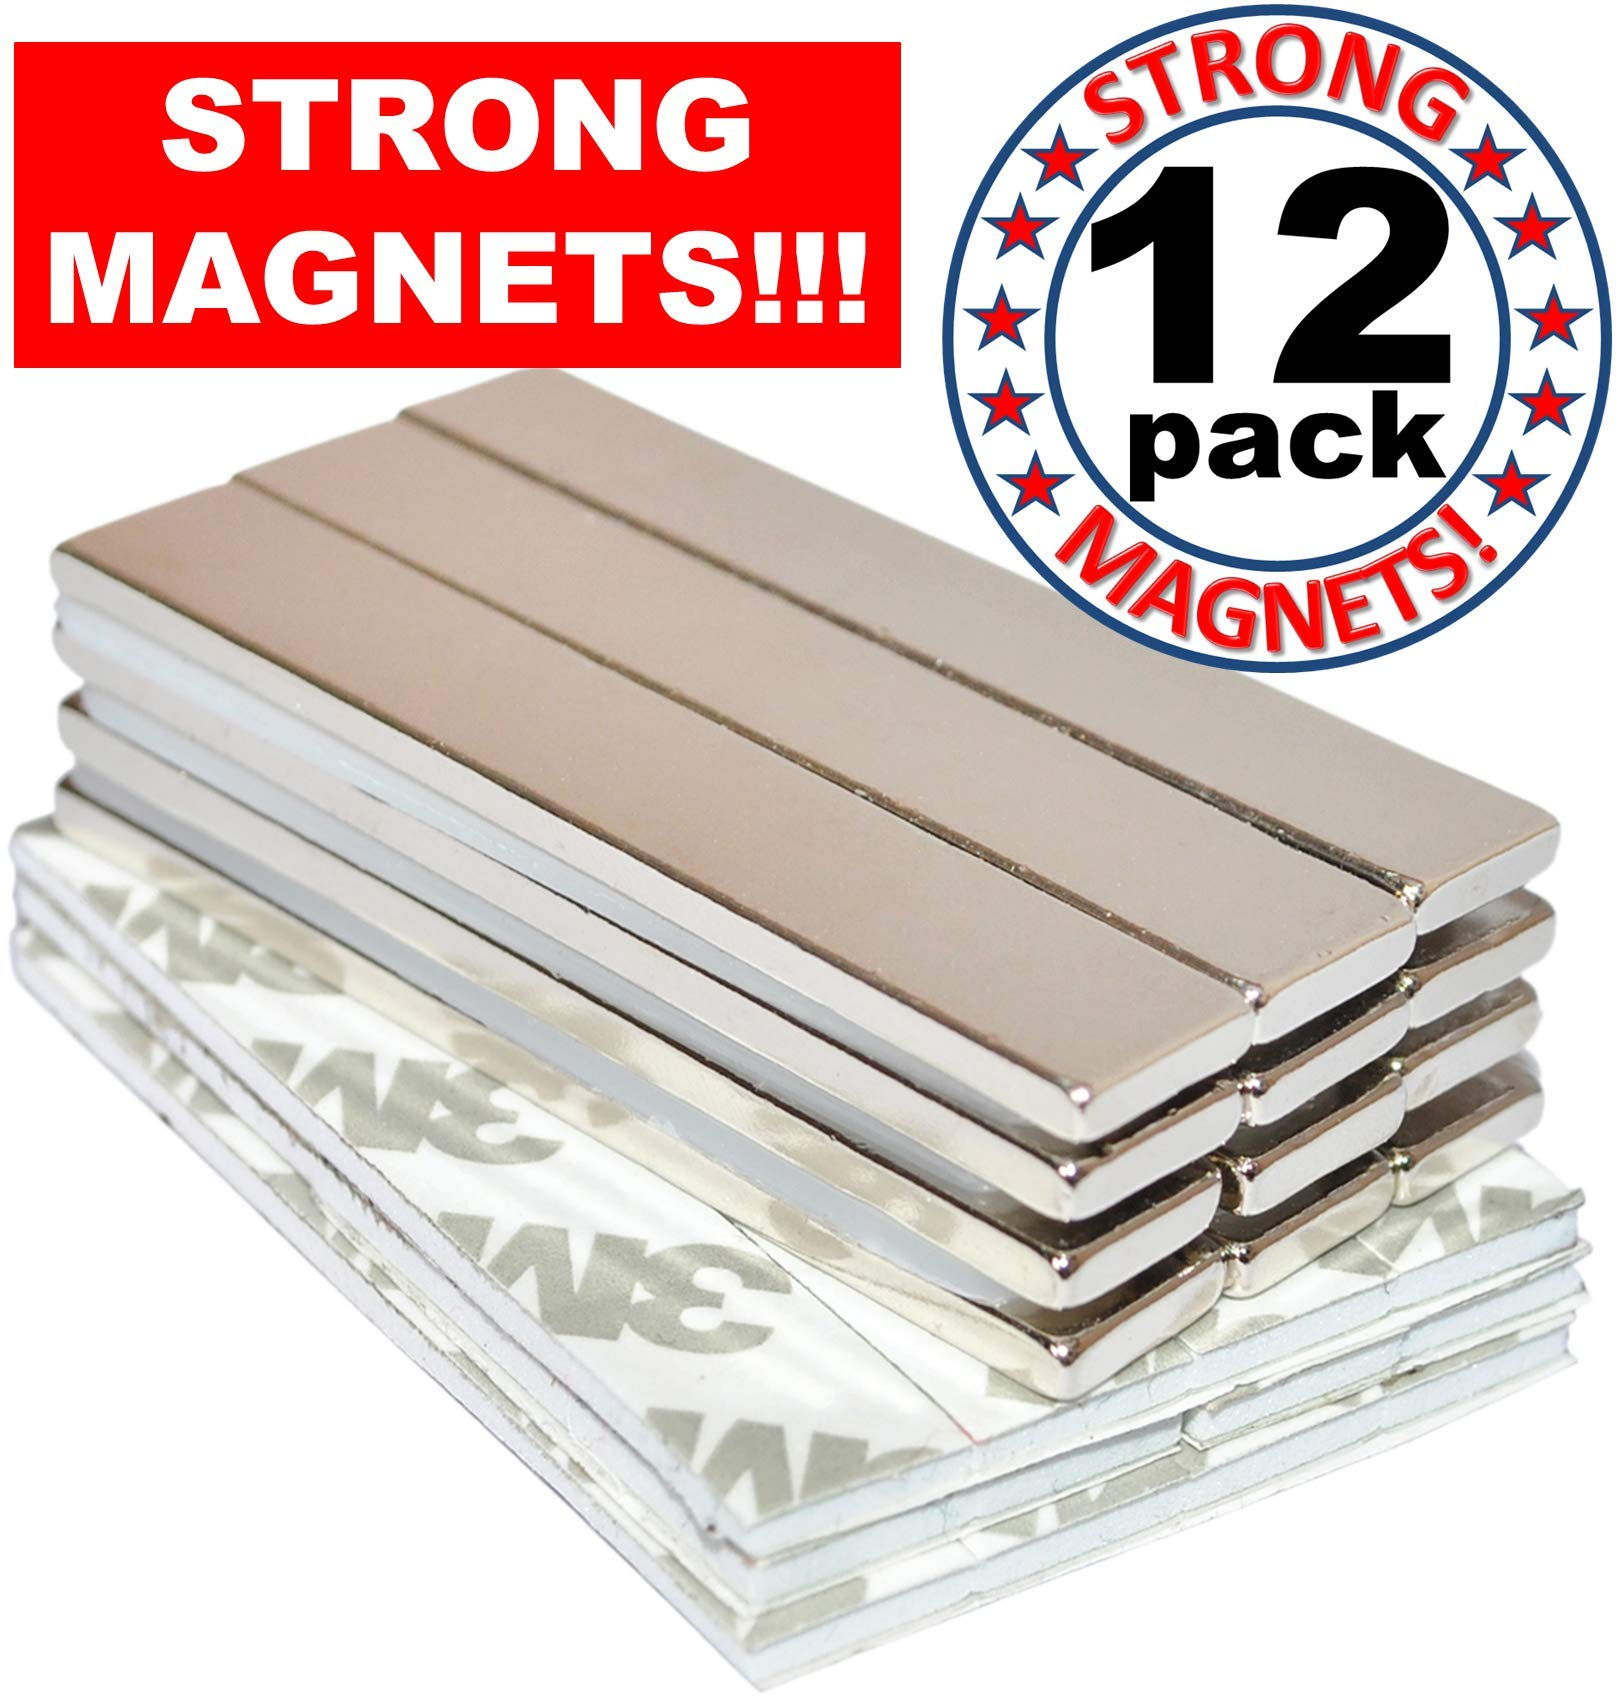 Rare Earth Magnets Strong Neodymium: Bar Adhesive Super Permanent Metal Rectangular, 60x10x3mm, Powerful Pull Force, 12 Pack| Heavy Duty, Fridge Door, Garage, Kitchen, Science, Craft, Art, Office, DIY by Magnetland